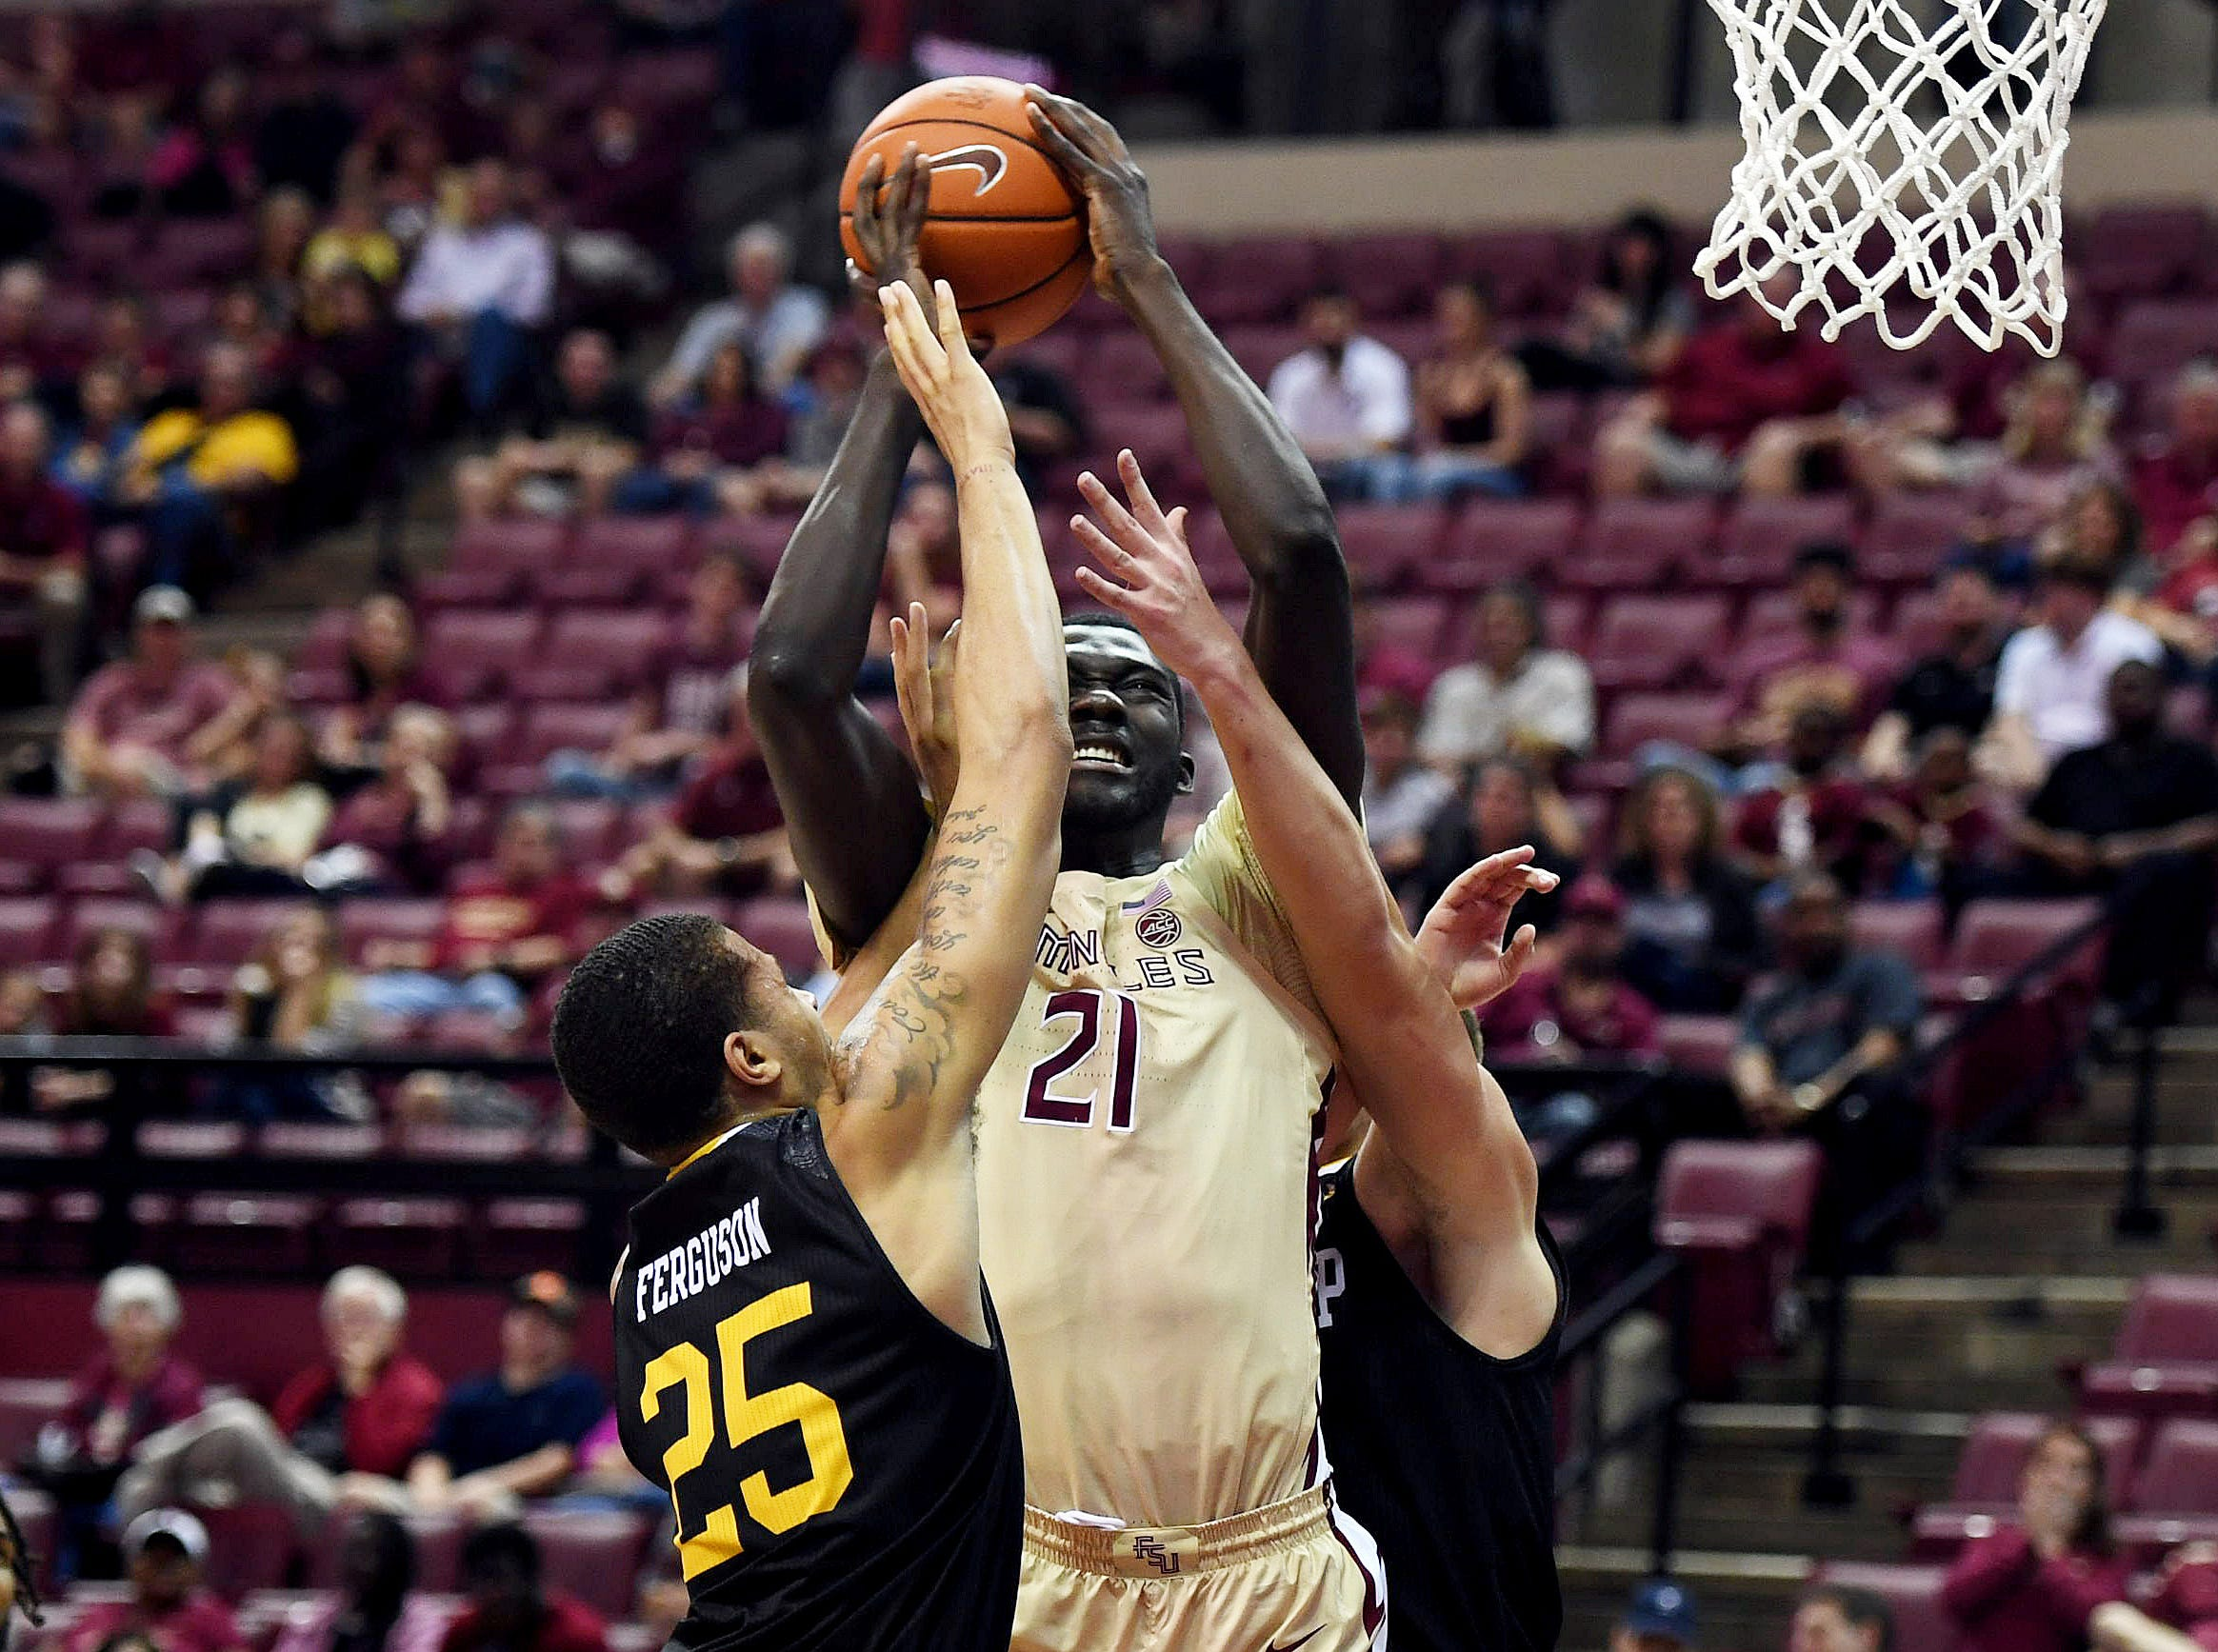 Jan 1, 2019; Tallahassee, FL, USA; Florida State Seminoles center Christ Koumadje (21) controls the ball as ball Winthrop Eagles forward Josh Ferguson (25) defends during the first half at Donald L. Tucker Center. Mandatory Credit: Melina Myers-USA TODAY Sports